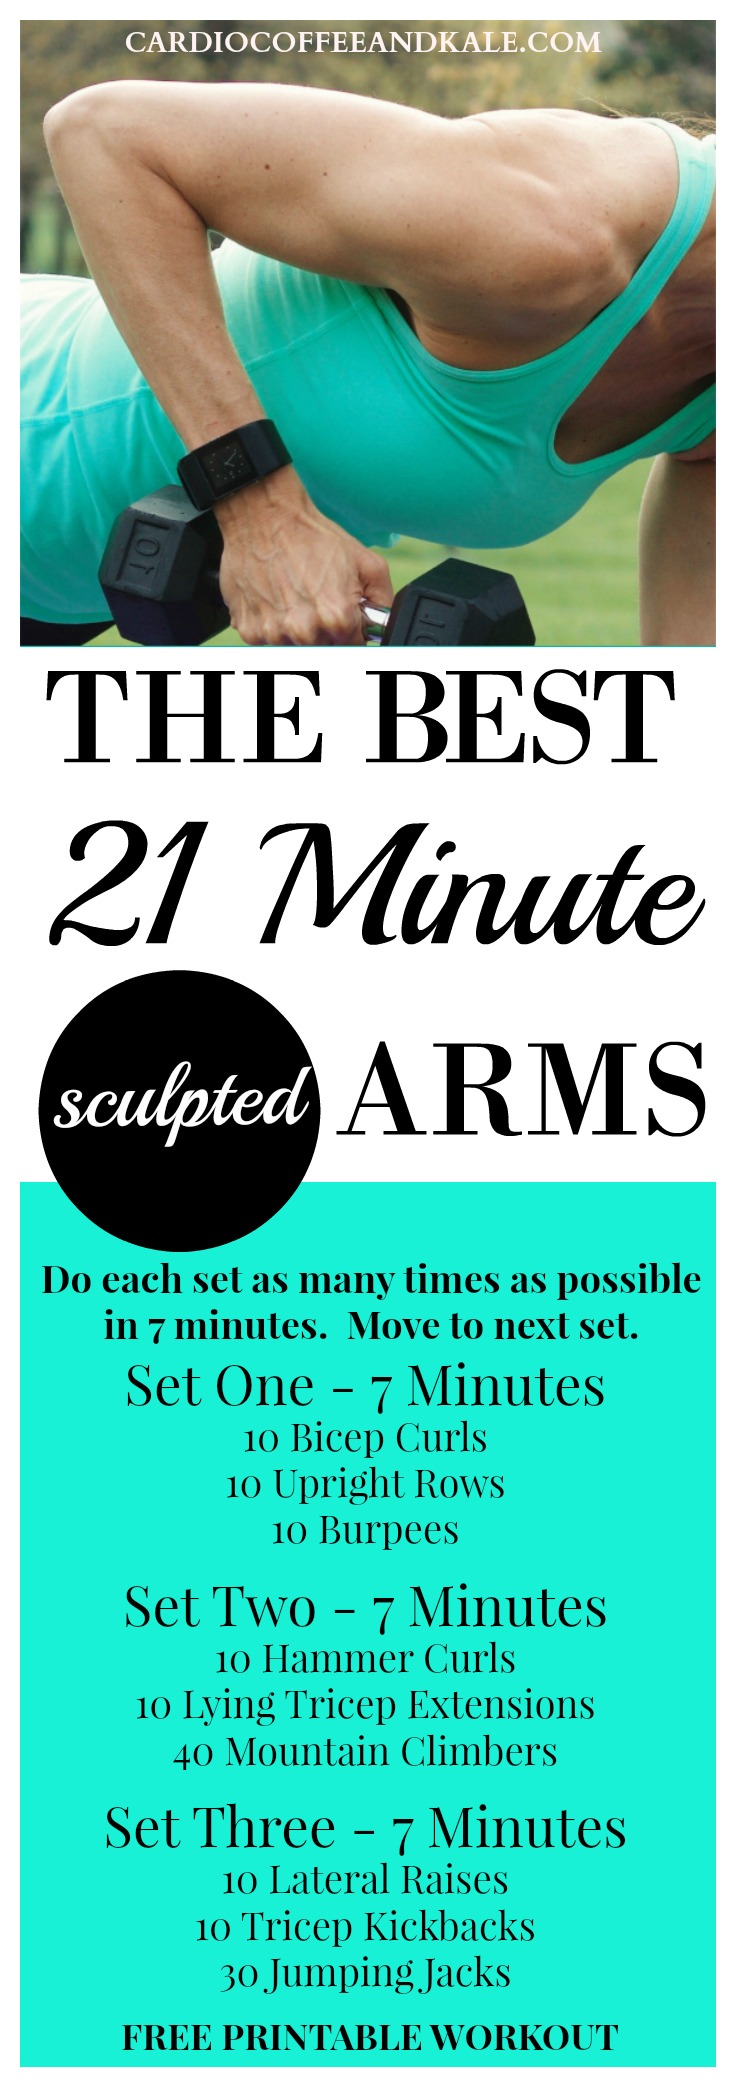 The Best 21 Minute Sculpted Arms Workout! This fast and effective workout will add shape to your arms and keep your heart pumping!  www.cardiocoffeeandkale.com for more great workouts!